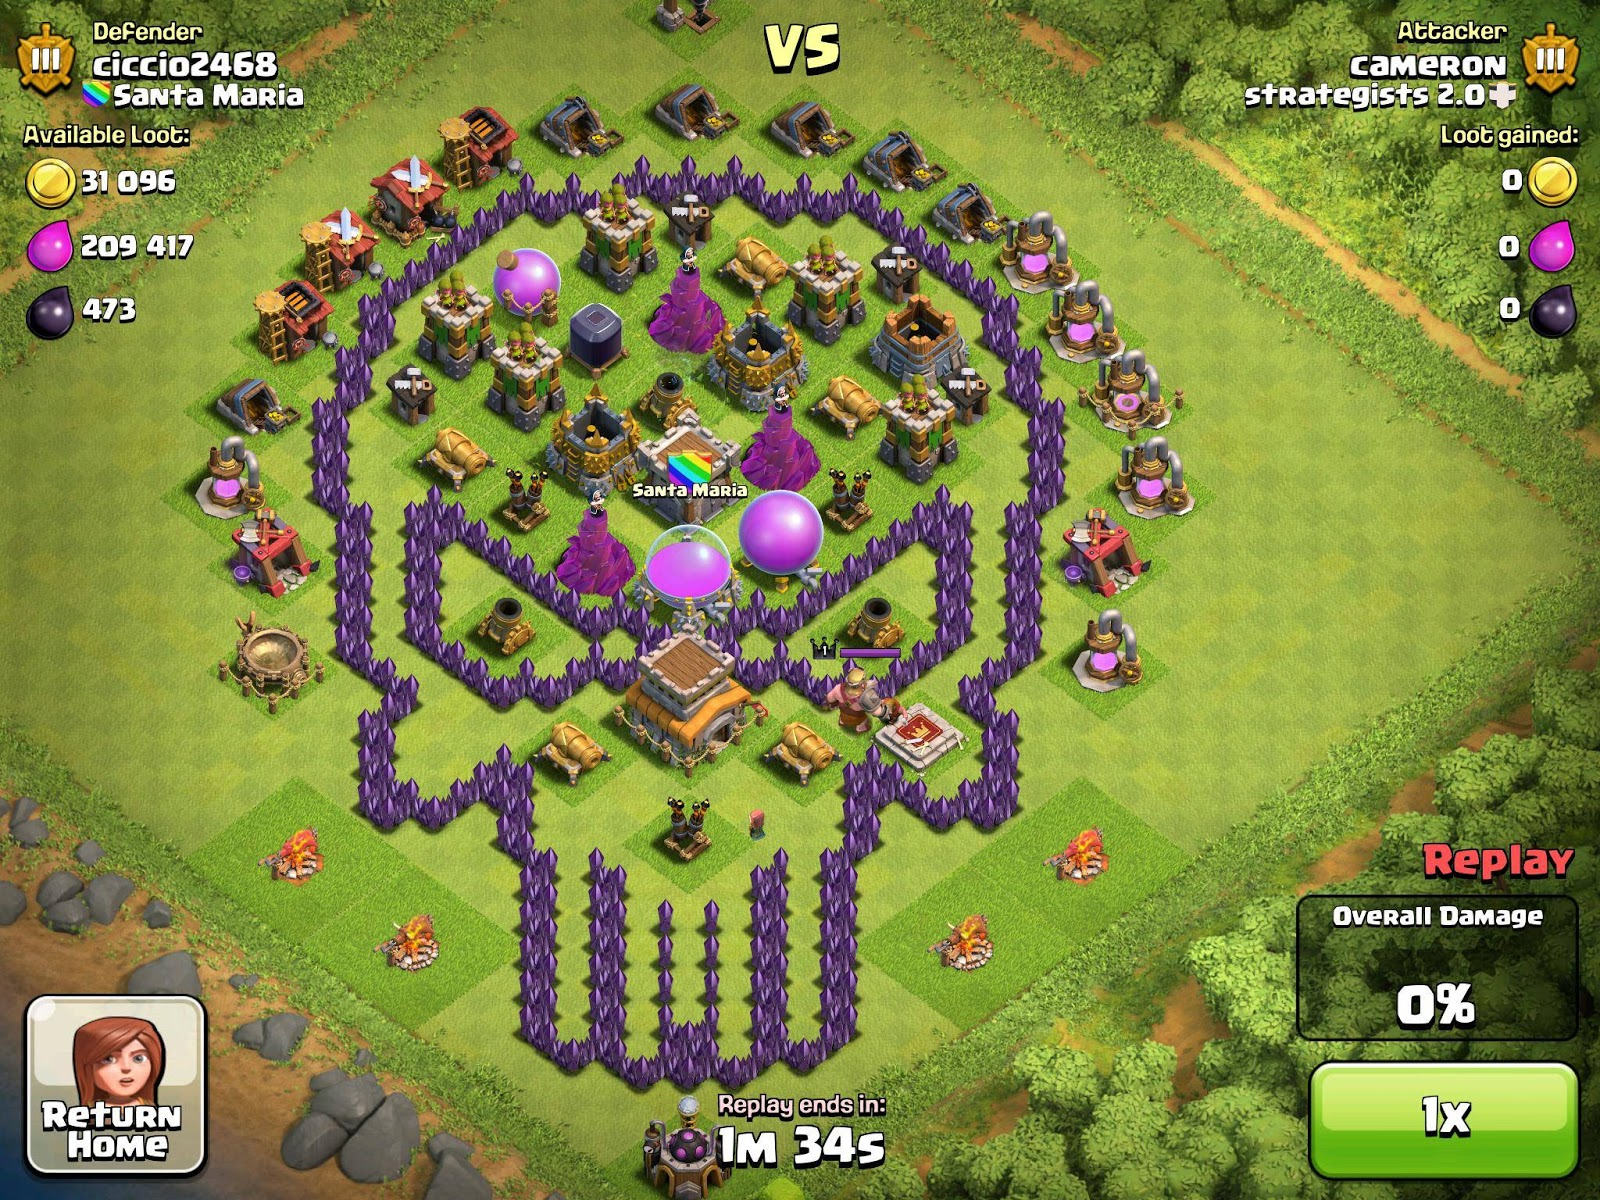 Kumpulan Base Keren Clash Of Clans Th 7 Kalaolaotm